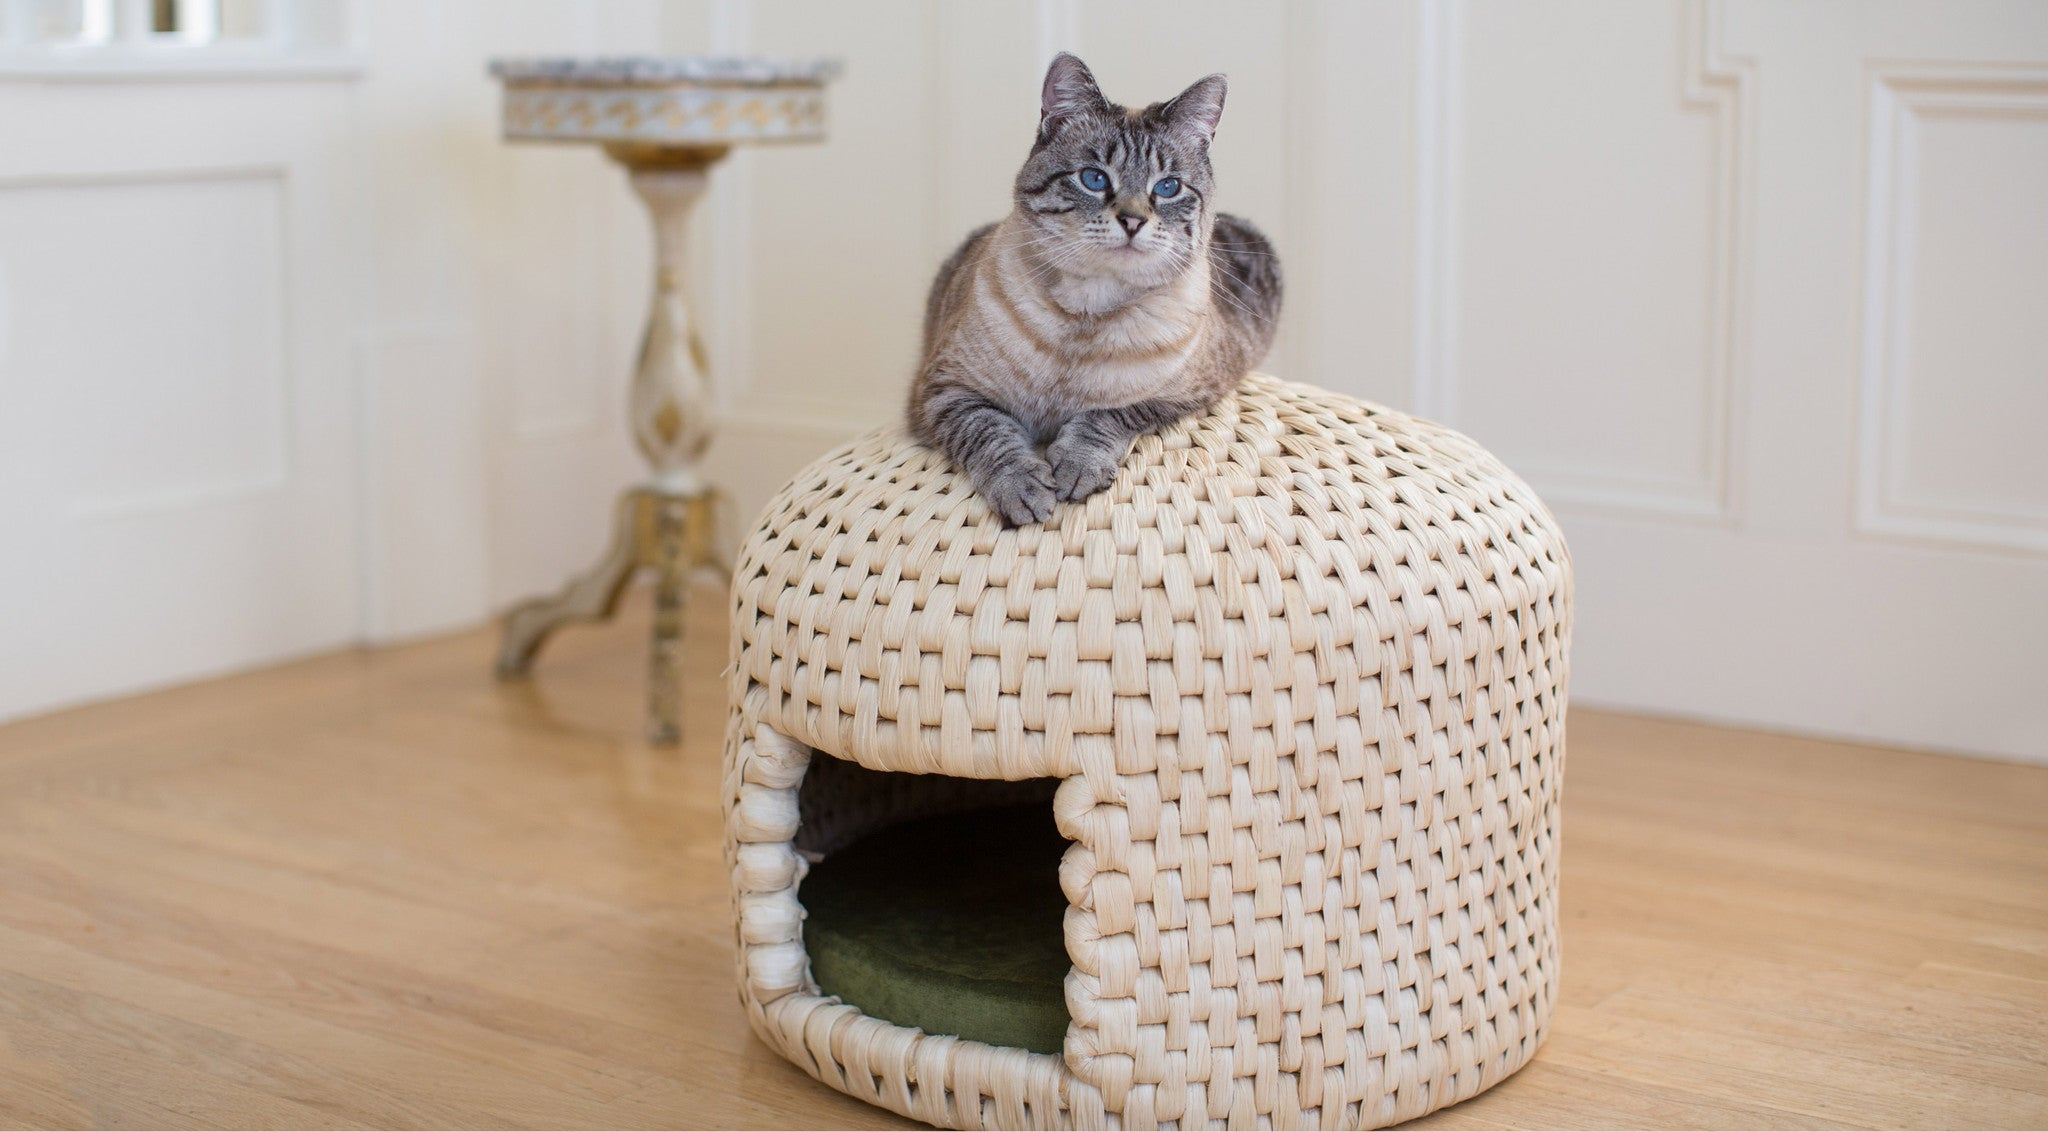 Cat relaxing on top of neko chigura eco friendly handwoven straw cat bed house